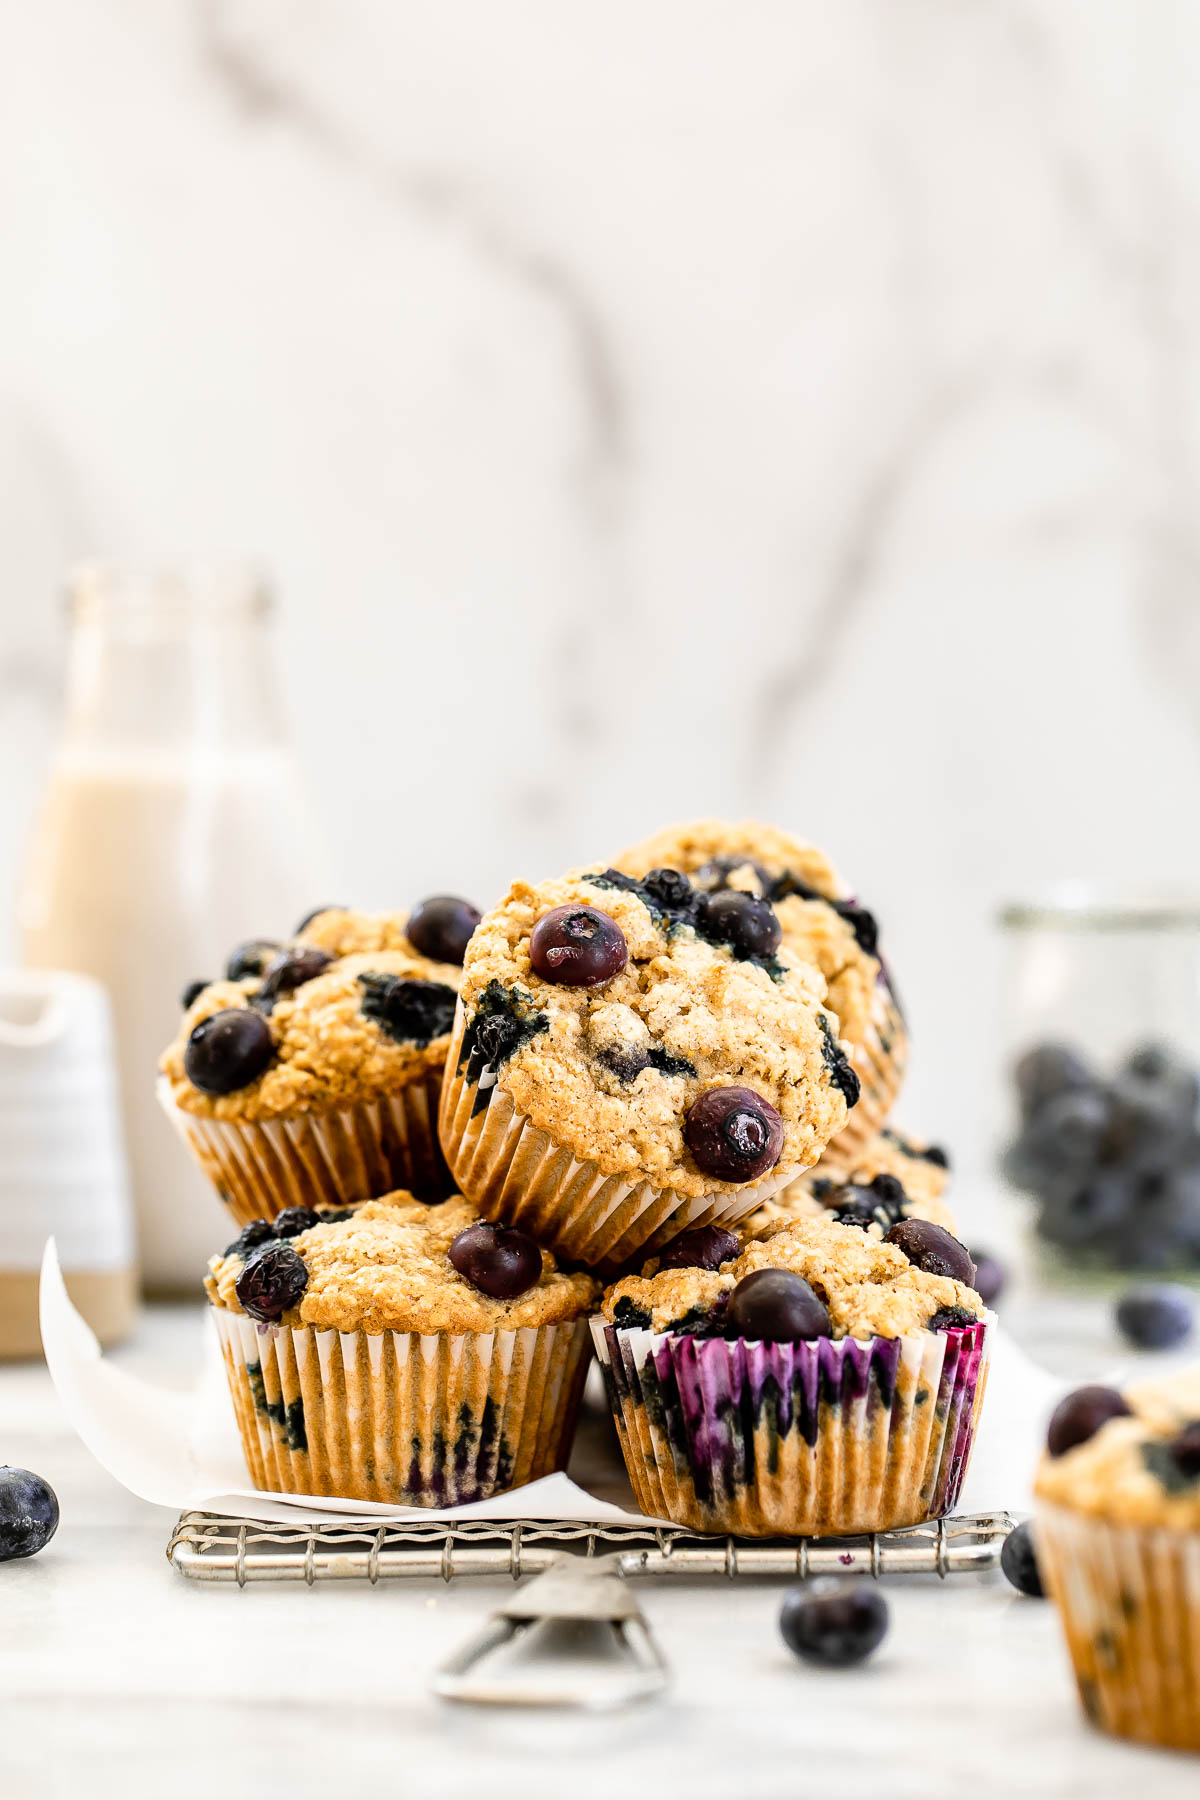 Vegan oatmeal muffins stacked on each other with milk in the background.